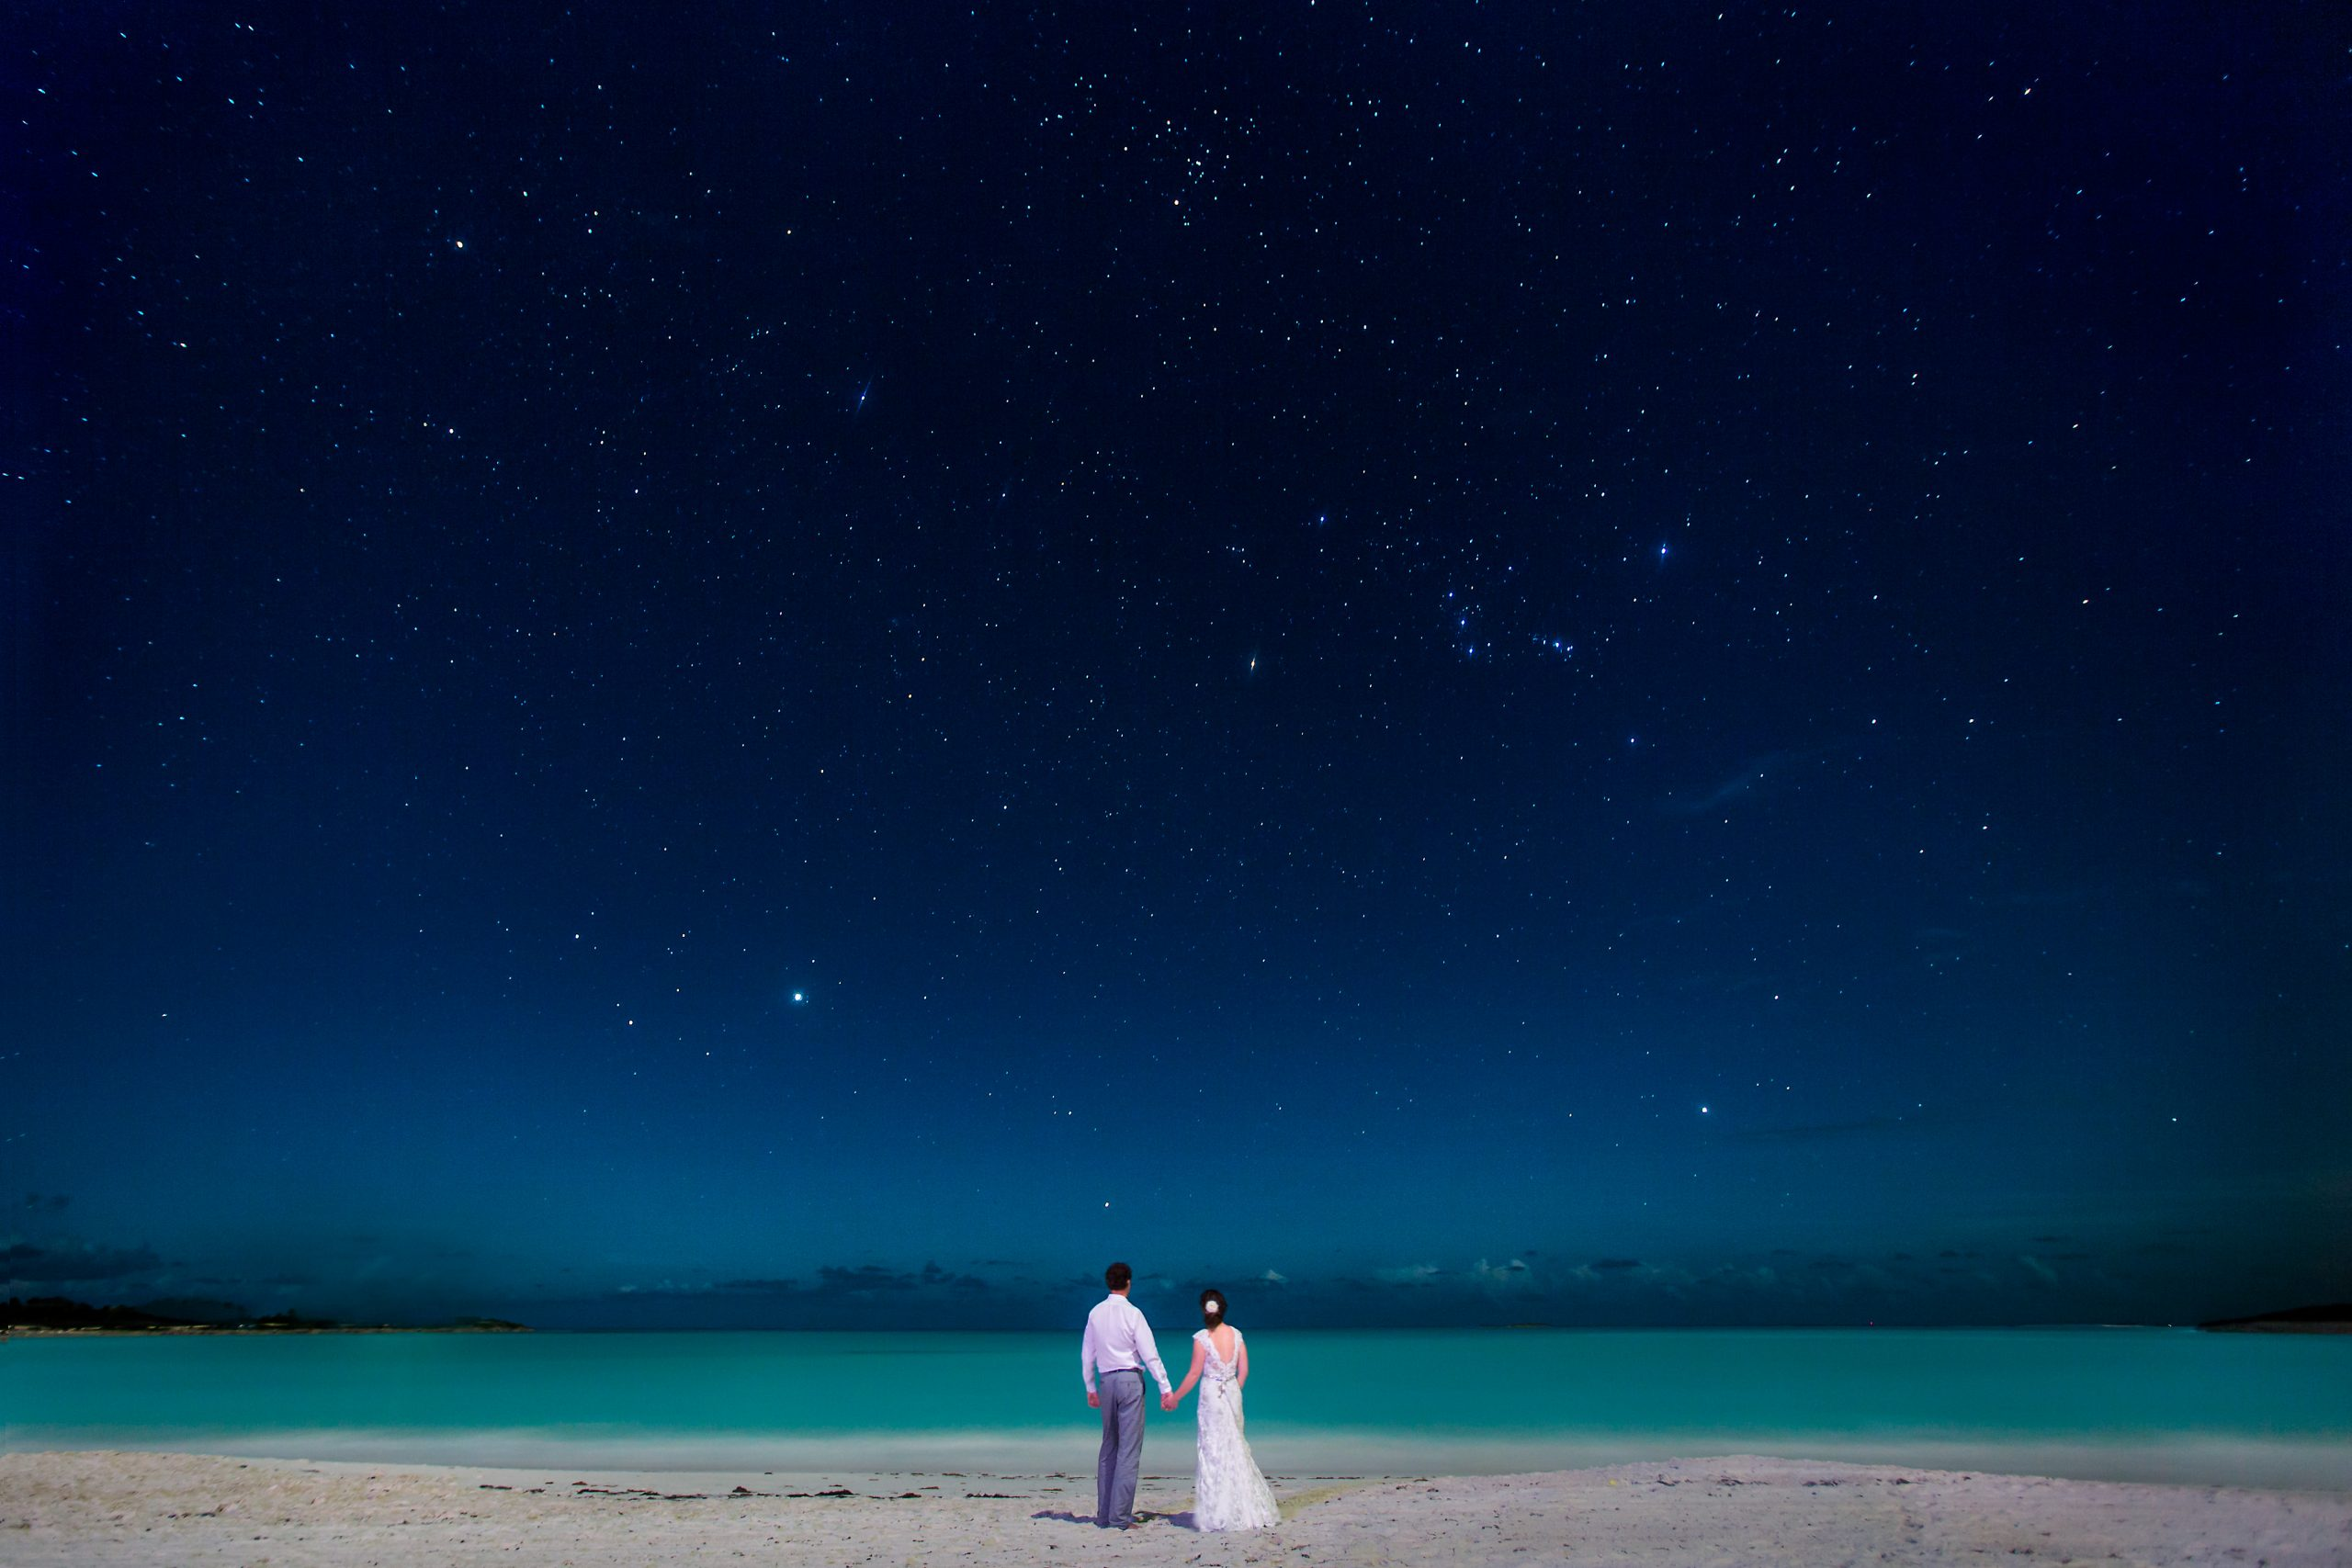 Bride and groom staring out into Sandals Emerald Bay on a starry night